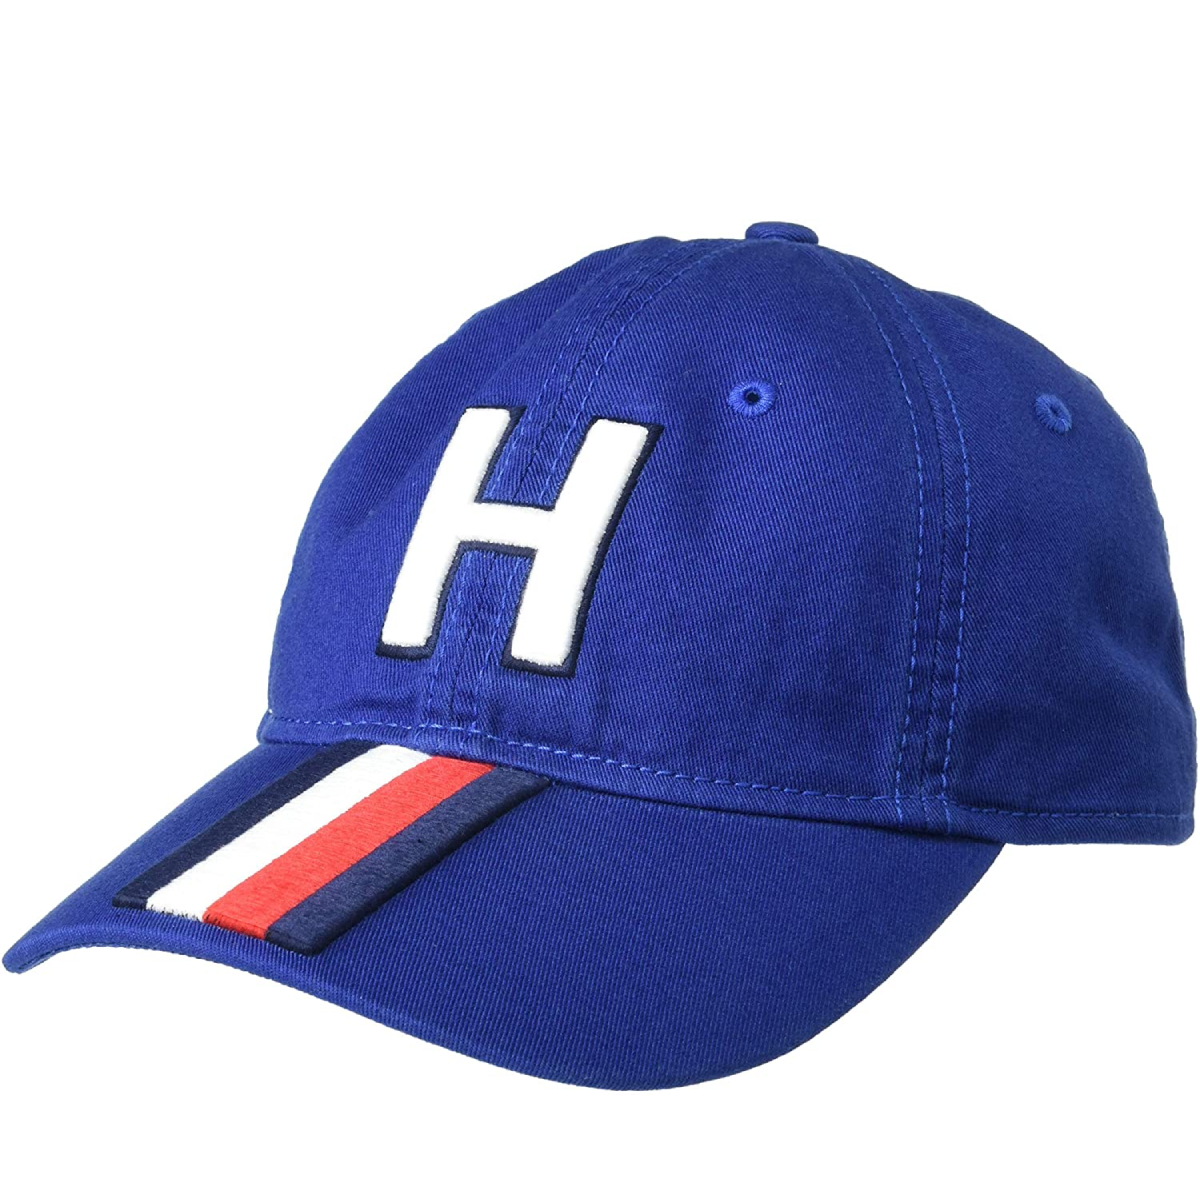 non-tommy-hilfiger-76